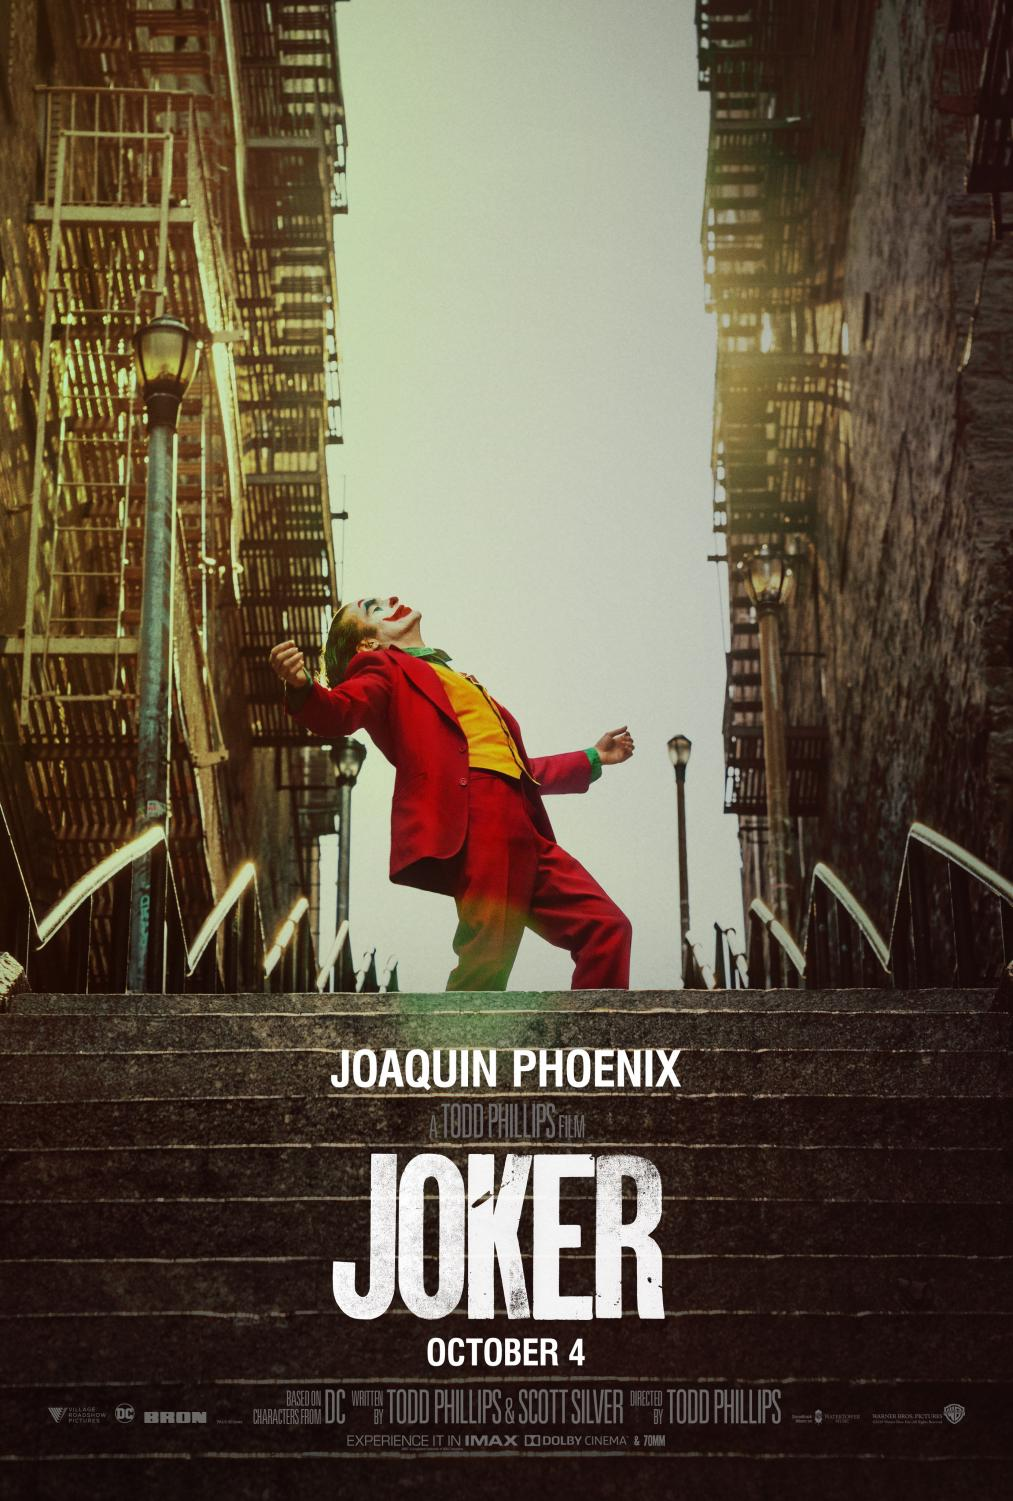 Because of Joaquin Phoenix's unnerving performance, he won the Golden Globe Award for Best Actor in a Motion Picture - Drama.